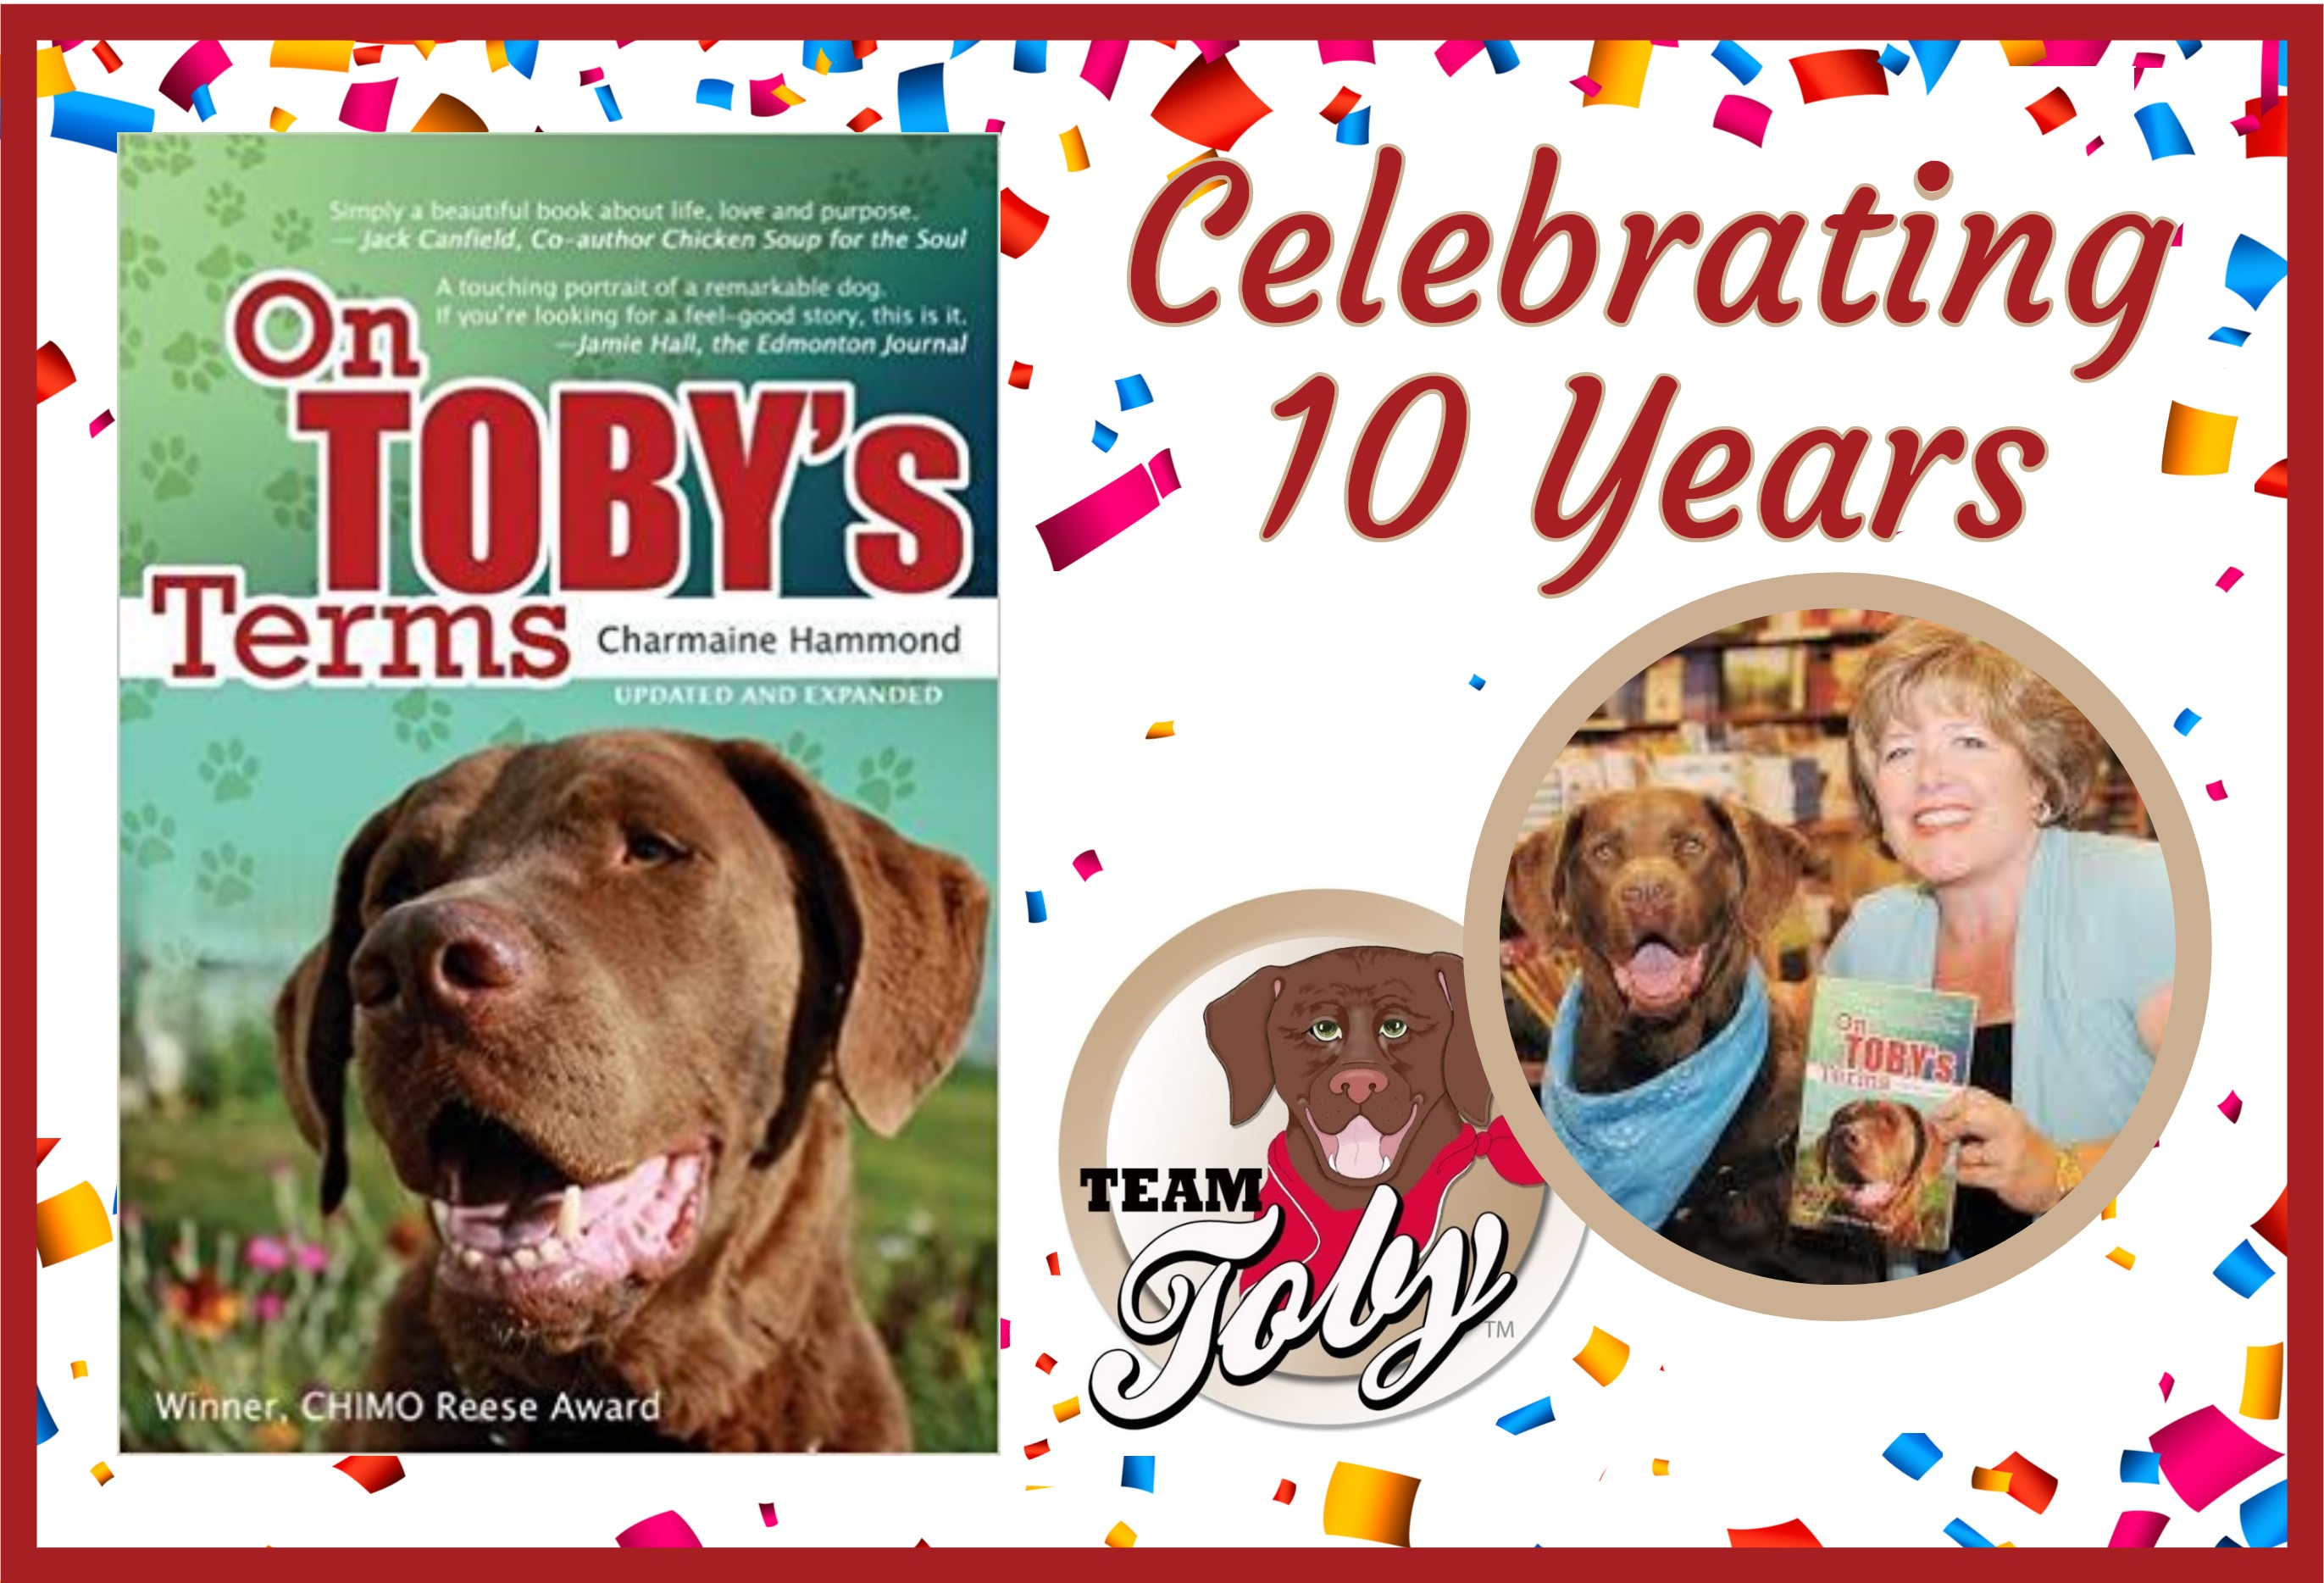 Celebrating Ten Years of On Toby's Terms!